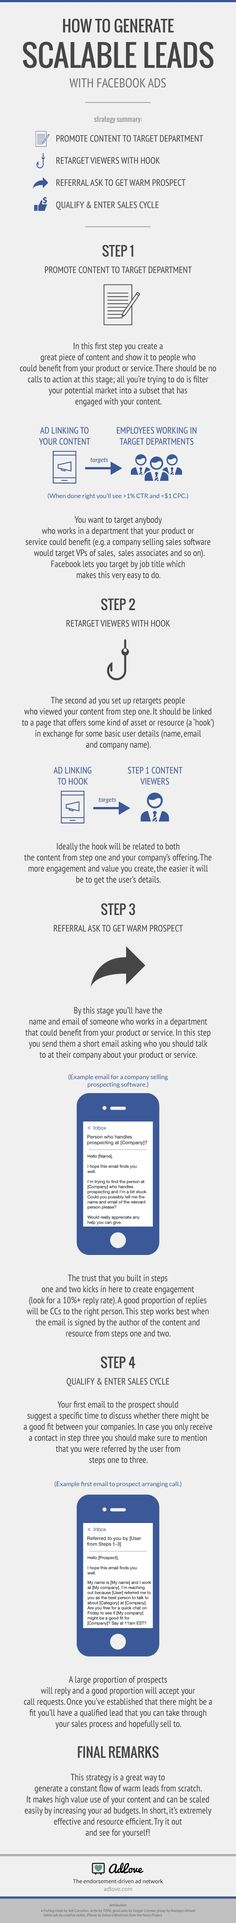 4 Steps You Can Follow to Generate Leads on Facebook [Infographic] | Social Media Today